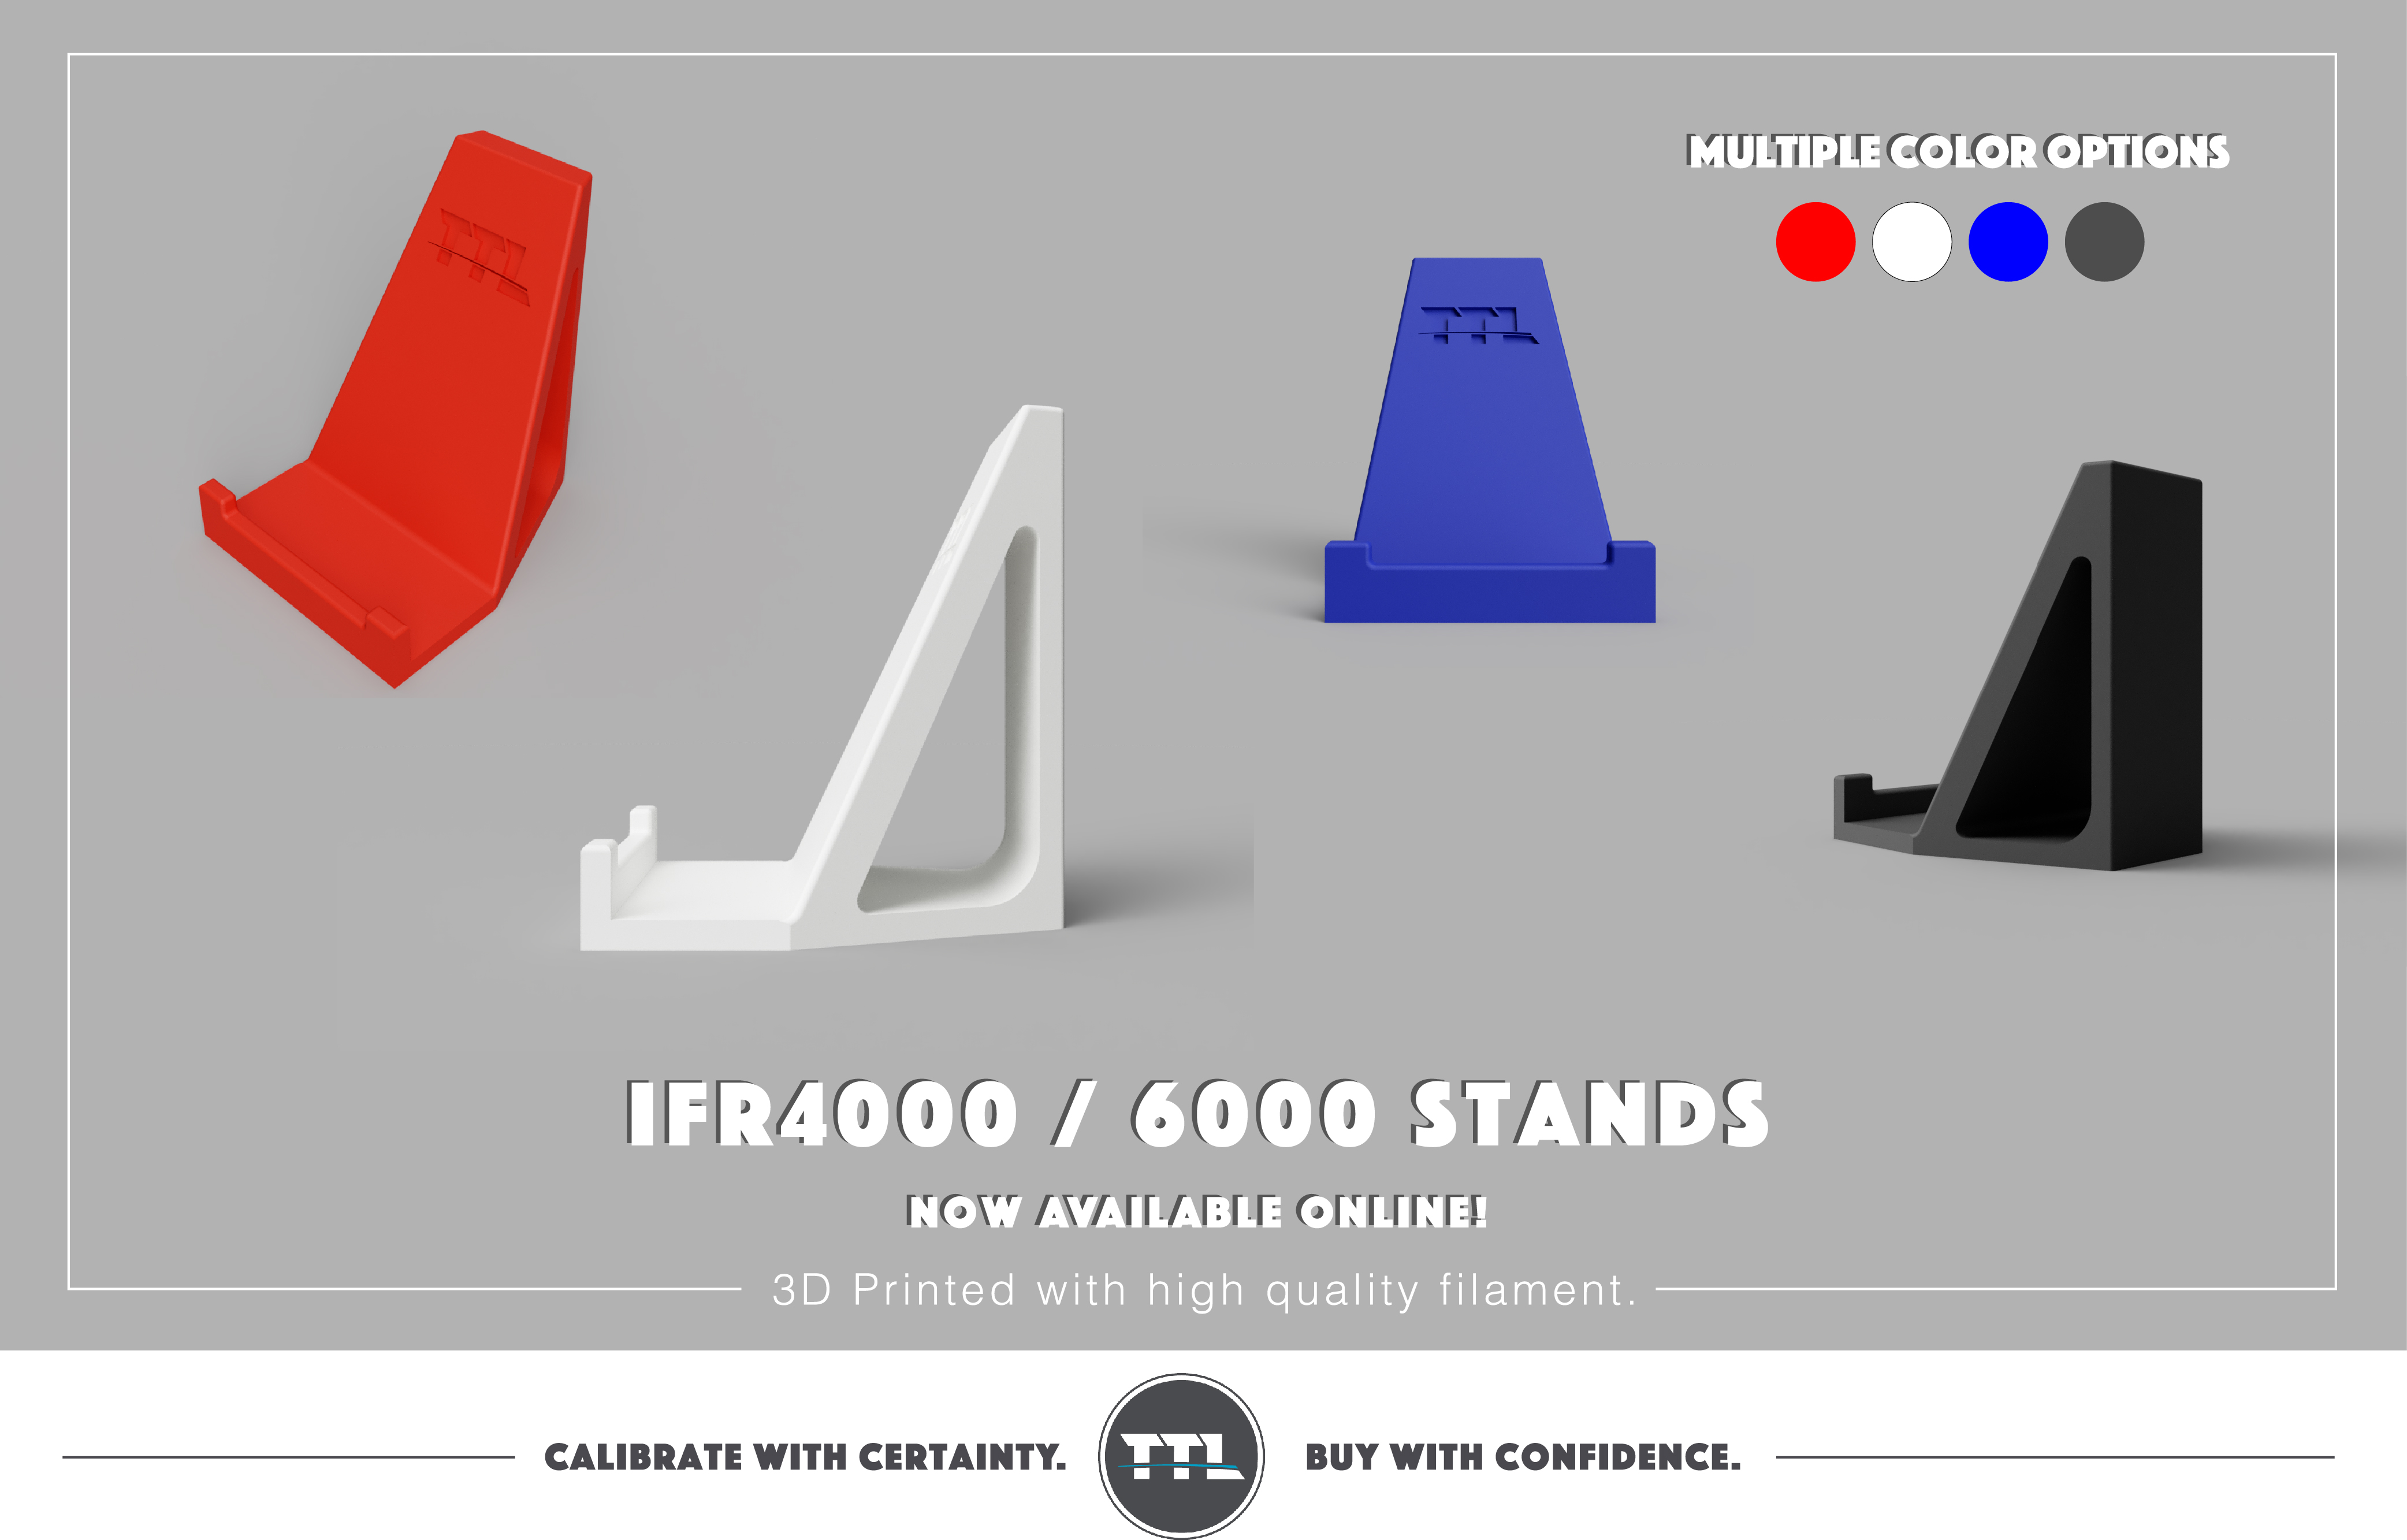 IFR4000, IFR6000 STAND